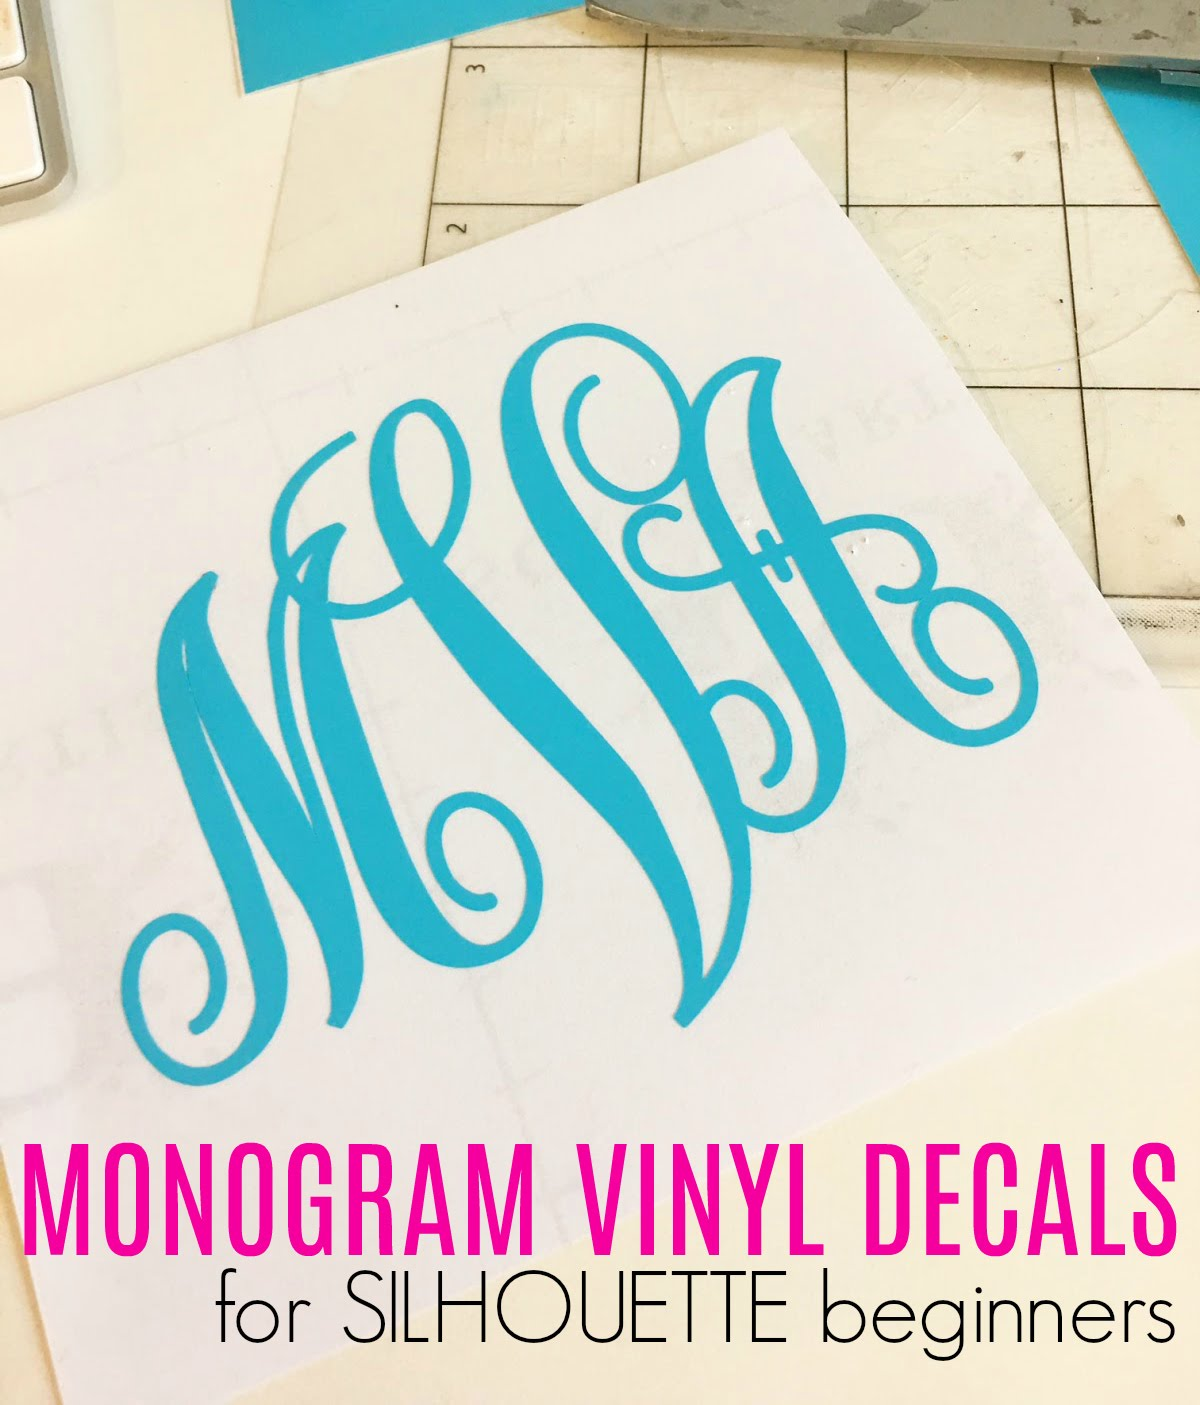 How To Cut A Vinyl Monogram With Silhouette CAMEO Silhouette School - How to make vinyl decals with silhouette